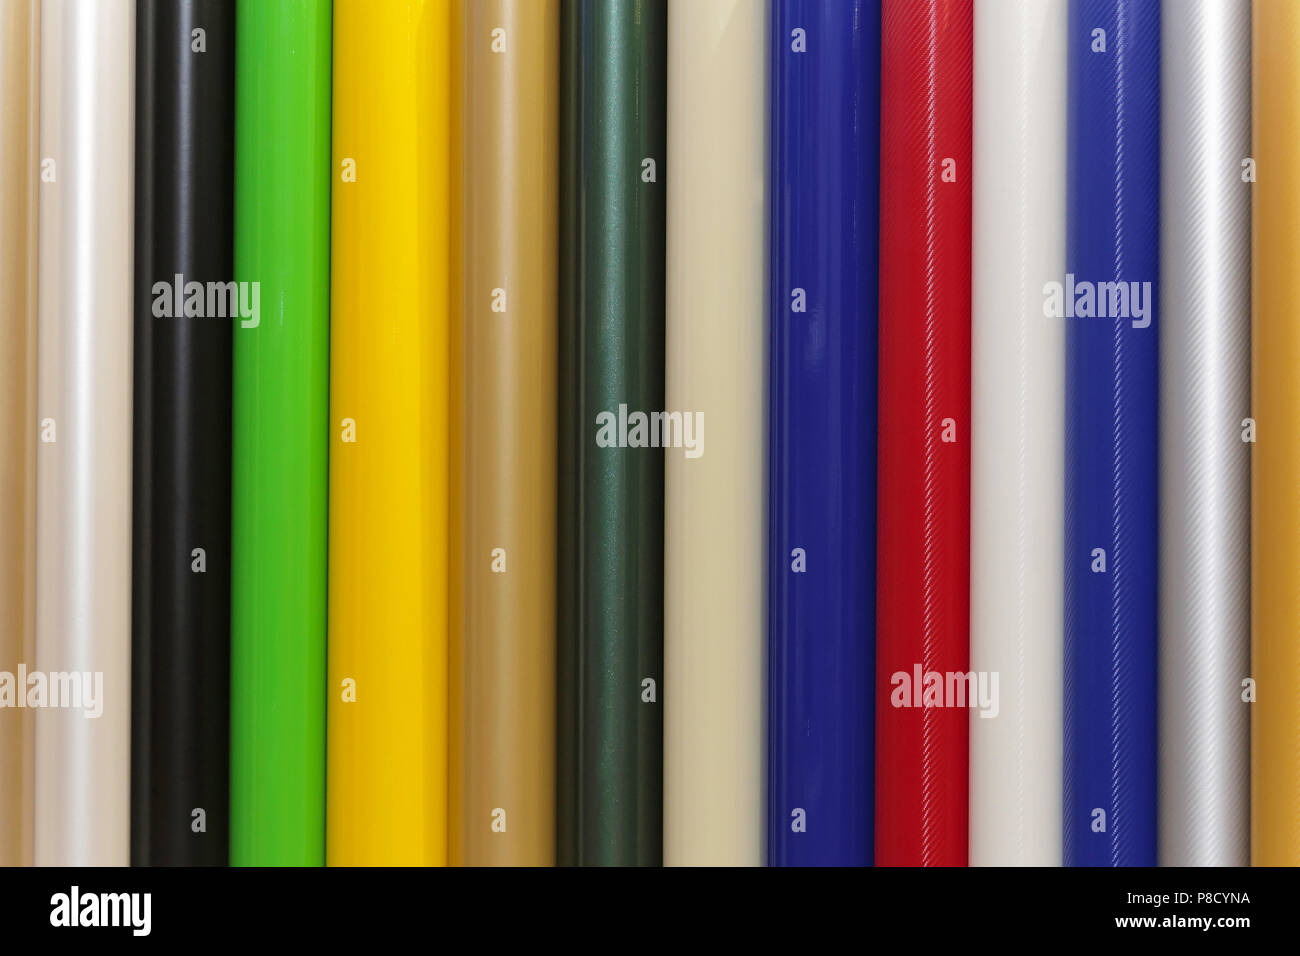 Vinyle Pvc Color Vinyl Pvc Plastic Foils Stock Photo 211726854 Alamy